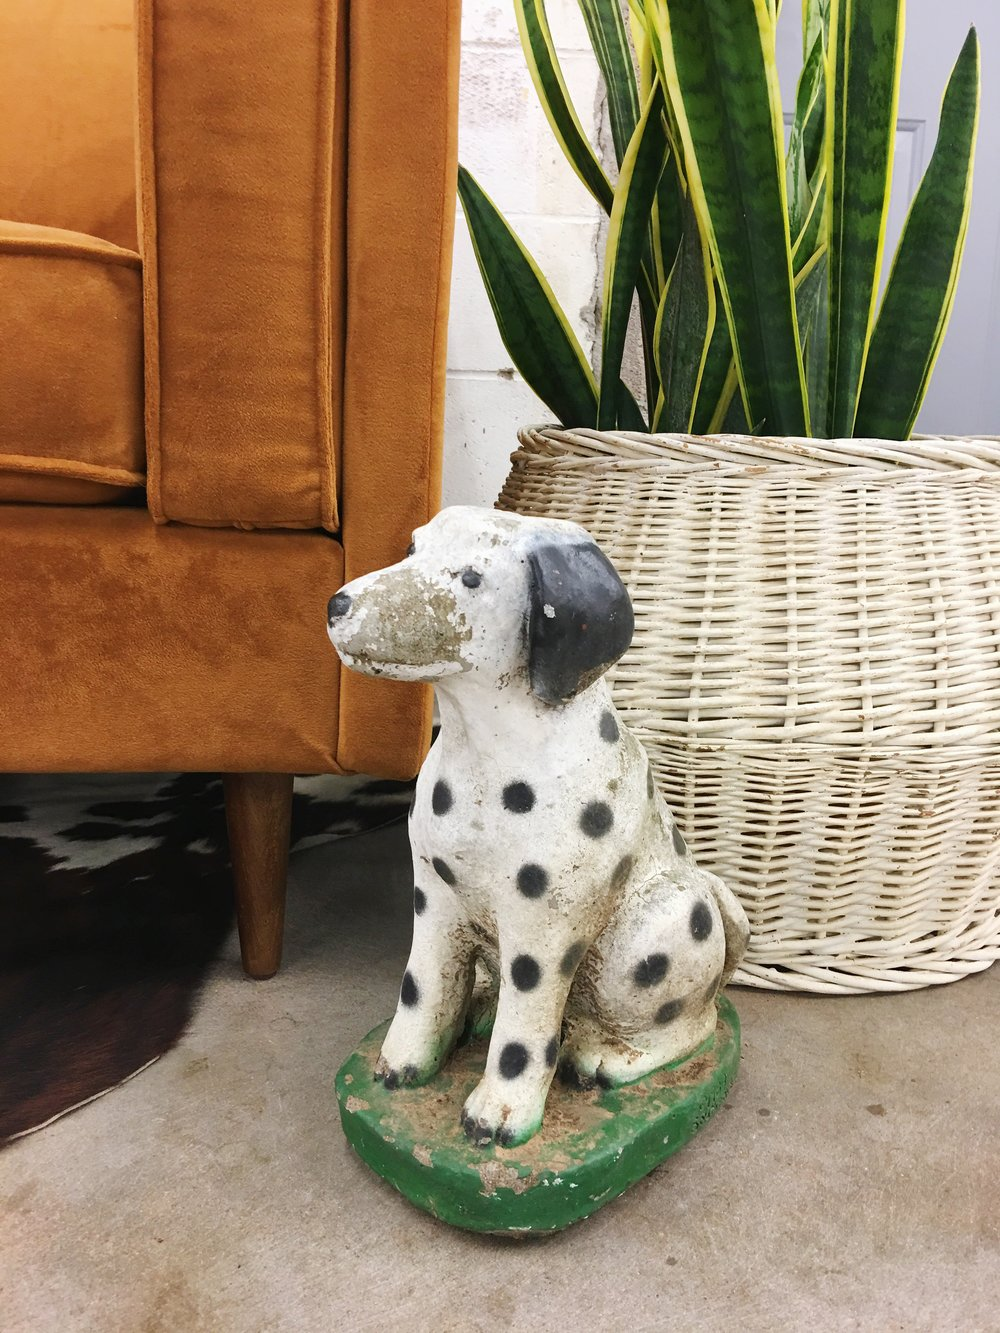 Quirky, unexpected items like this Dalmatian bring warmth to your space.